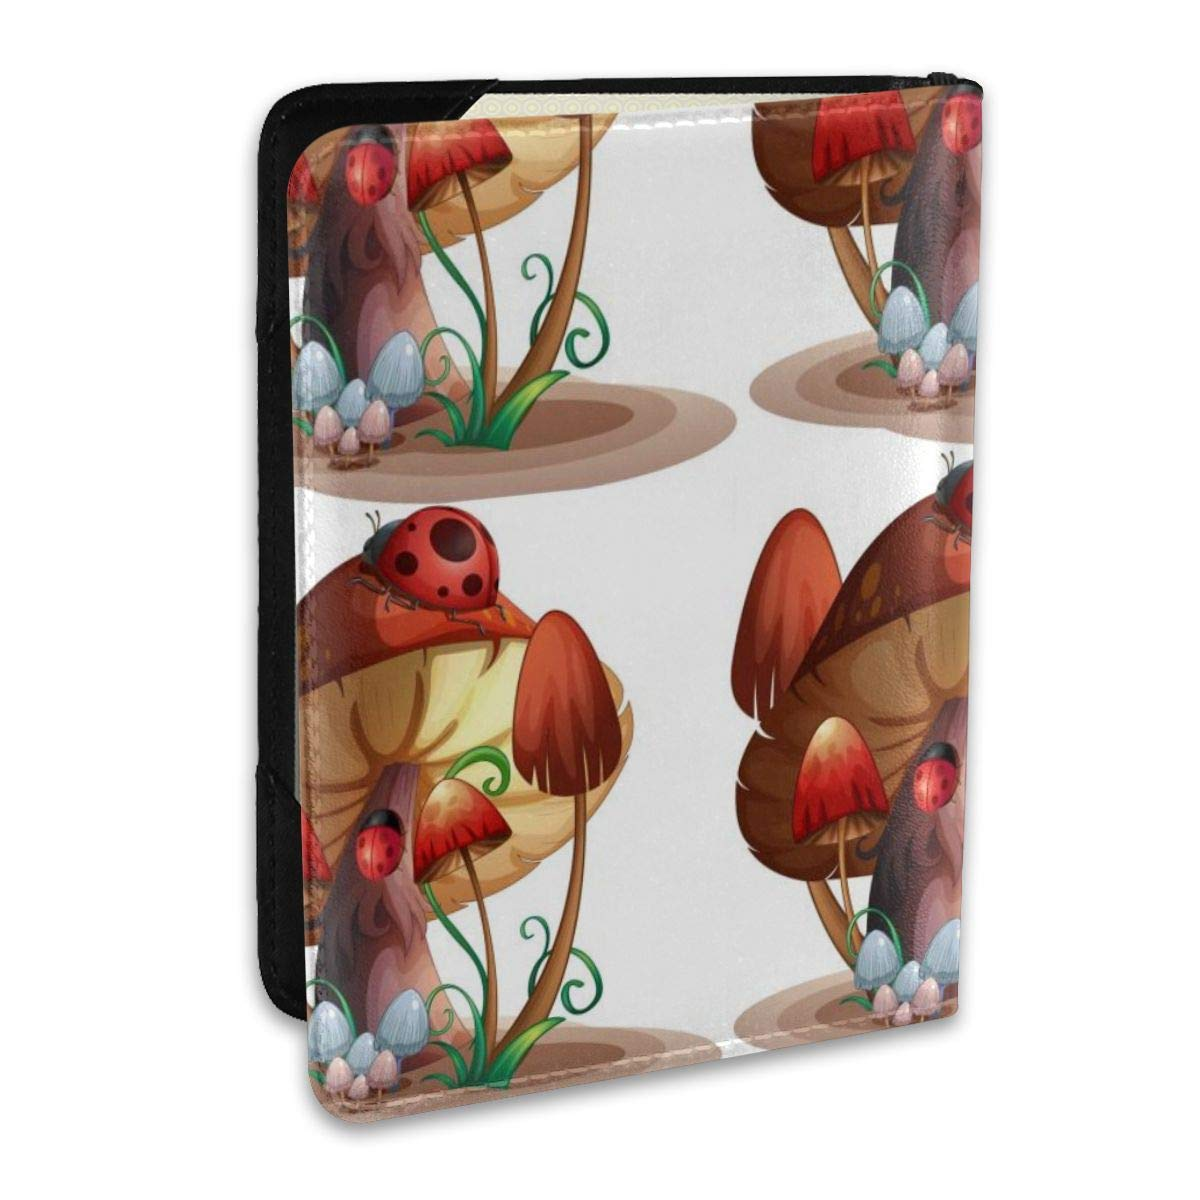 Biahos Leather Passport Cover Mushroom With A Ladybug Wallet For Passport Case